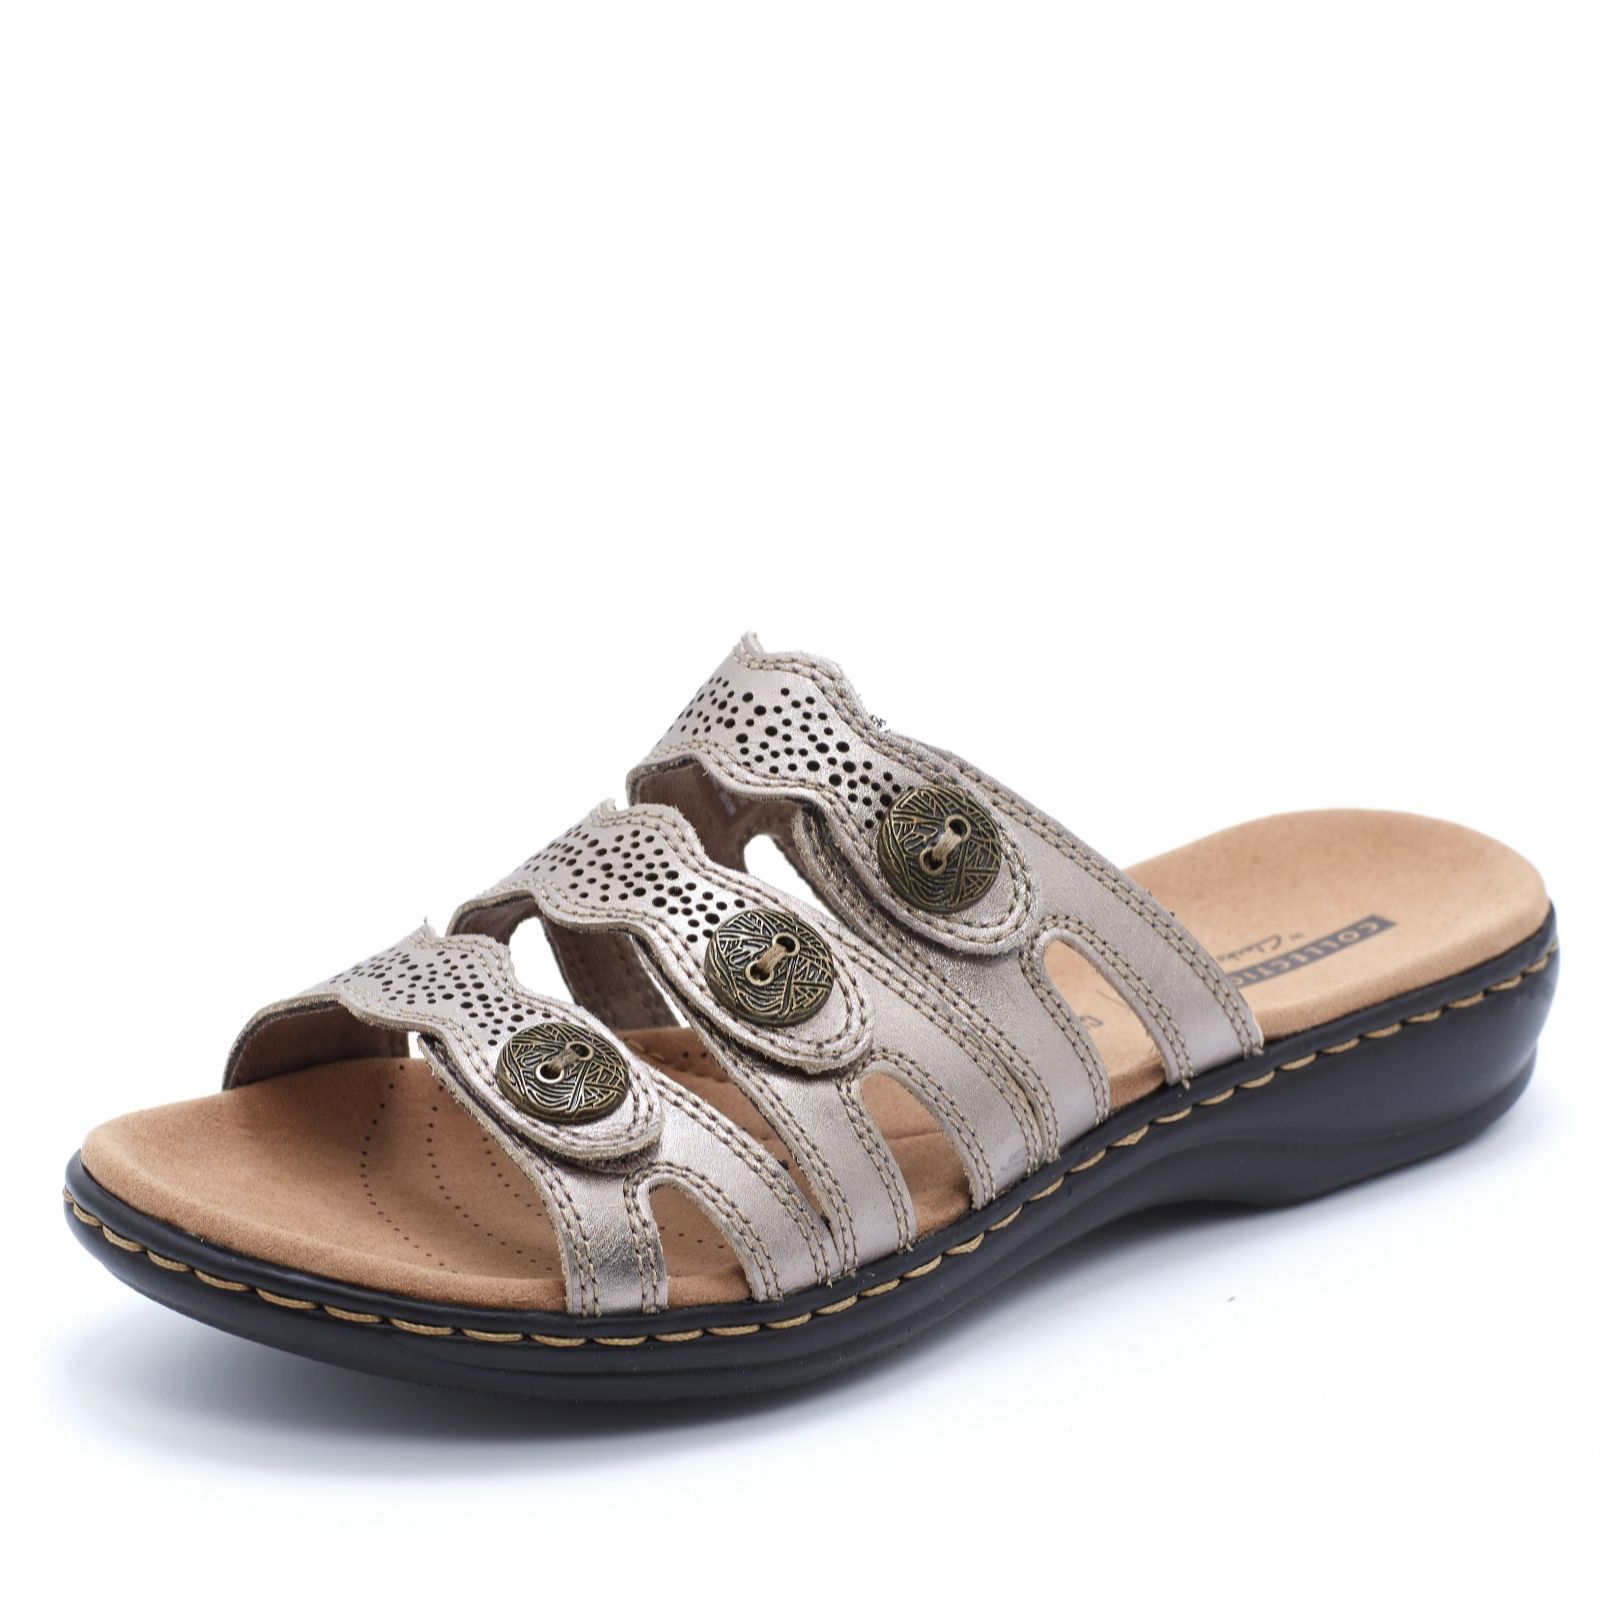 0efb19ae60f9 Clarks Leisa Grace Sandal Standard Fit - QVC UK